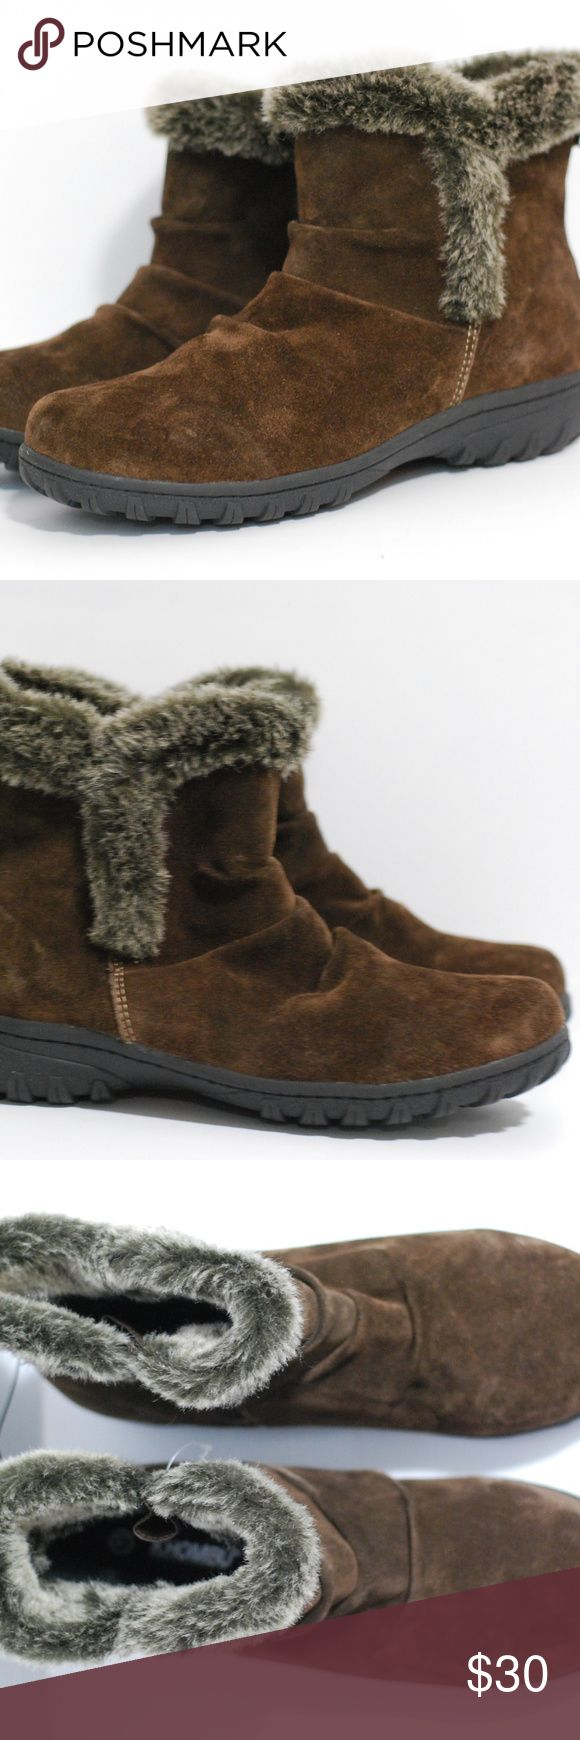 """Khombu Boots womens Shoes Khombu Womens Winter Boots Color Brown Faux Fur Trim Suede Leather  Measurements: For  Size 11M outsole Length~11.5 """" Heel Height~ 1"""" For size 6 Outsole Length: 9 1/2"""" For Size 7 Outsole Length: 10"""" Condition: New Without tags Questions are welcome! Fast Shipping from a smoke-free pet free home. Khombu Shoes Winter & Rain Boots"""